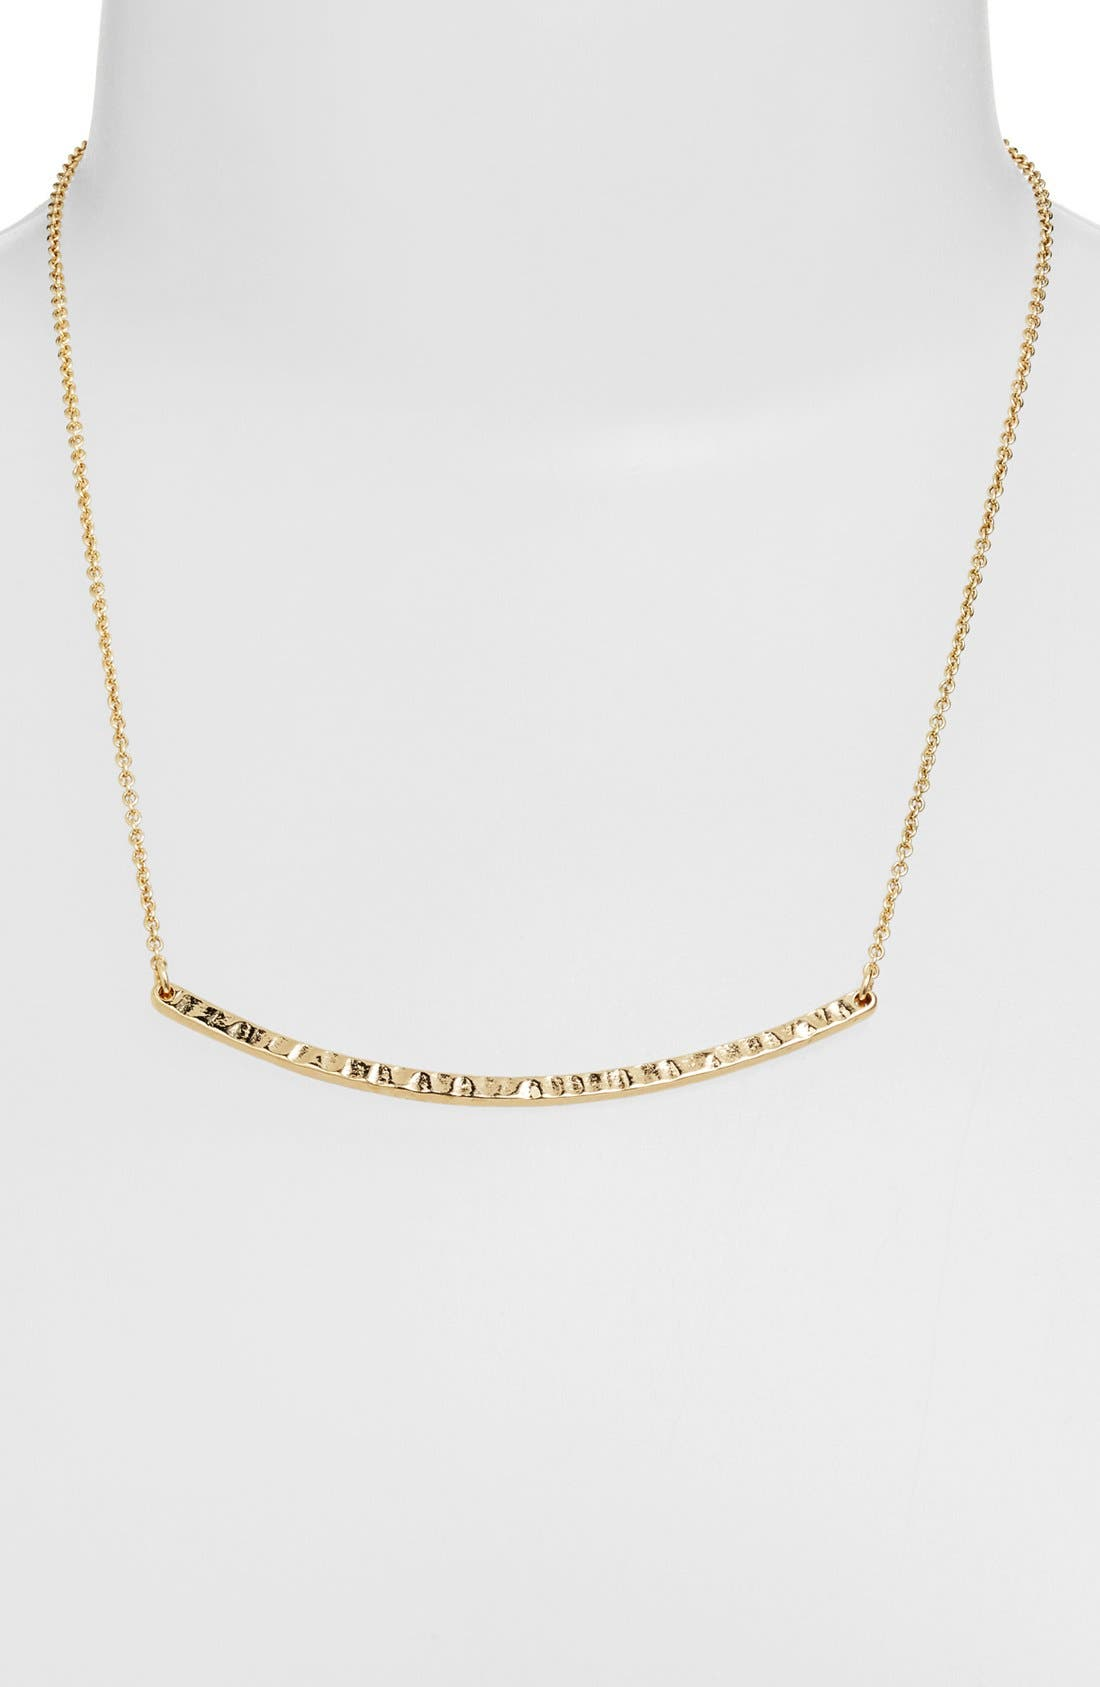 Alternate Image 1 Selected - Stephan & Co. Curved Bar Necklace